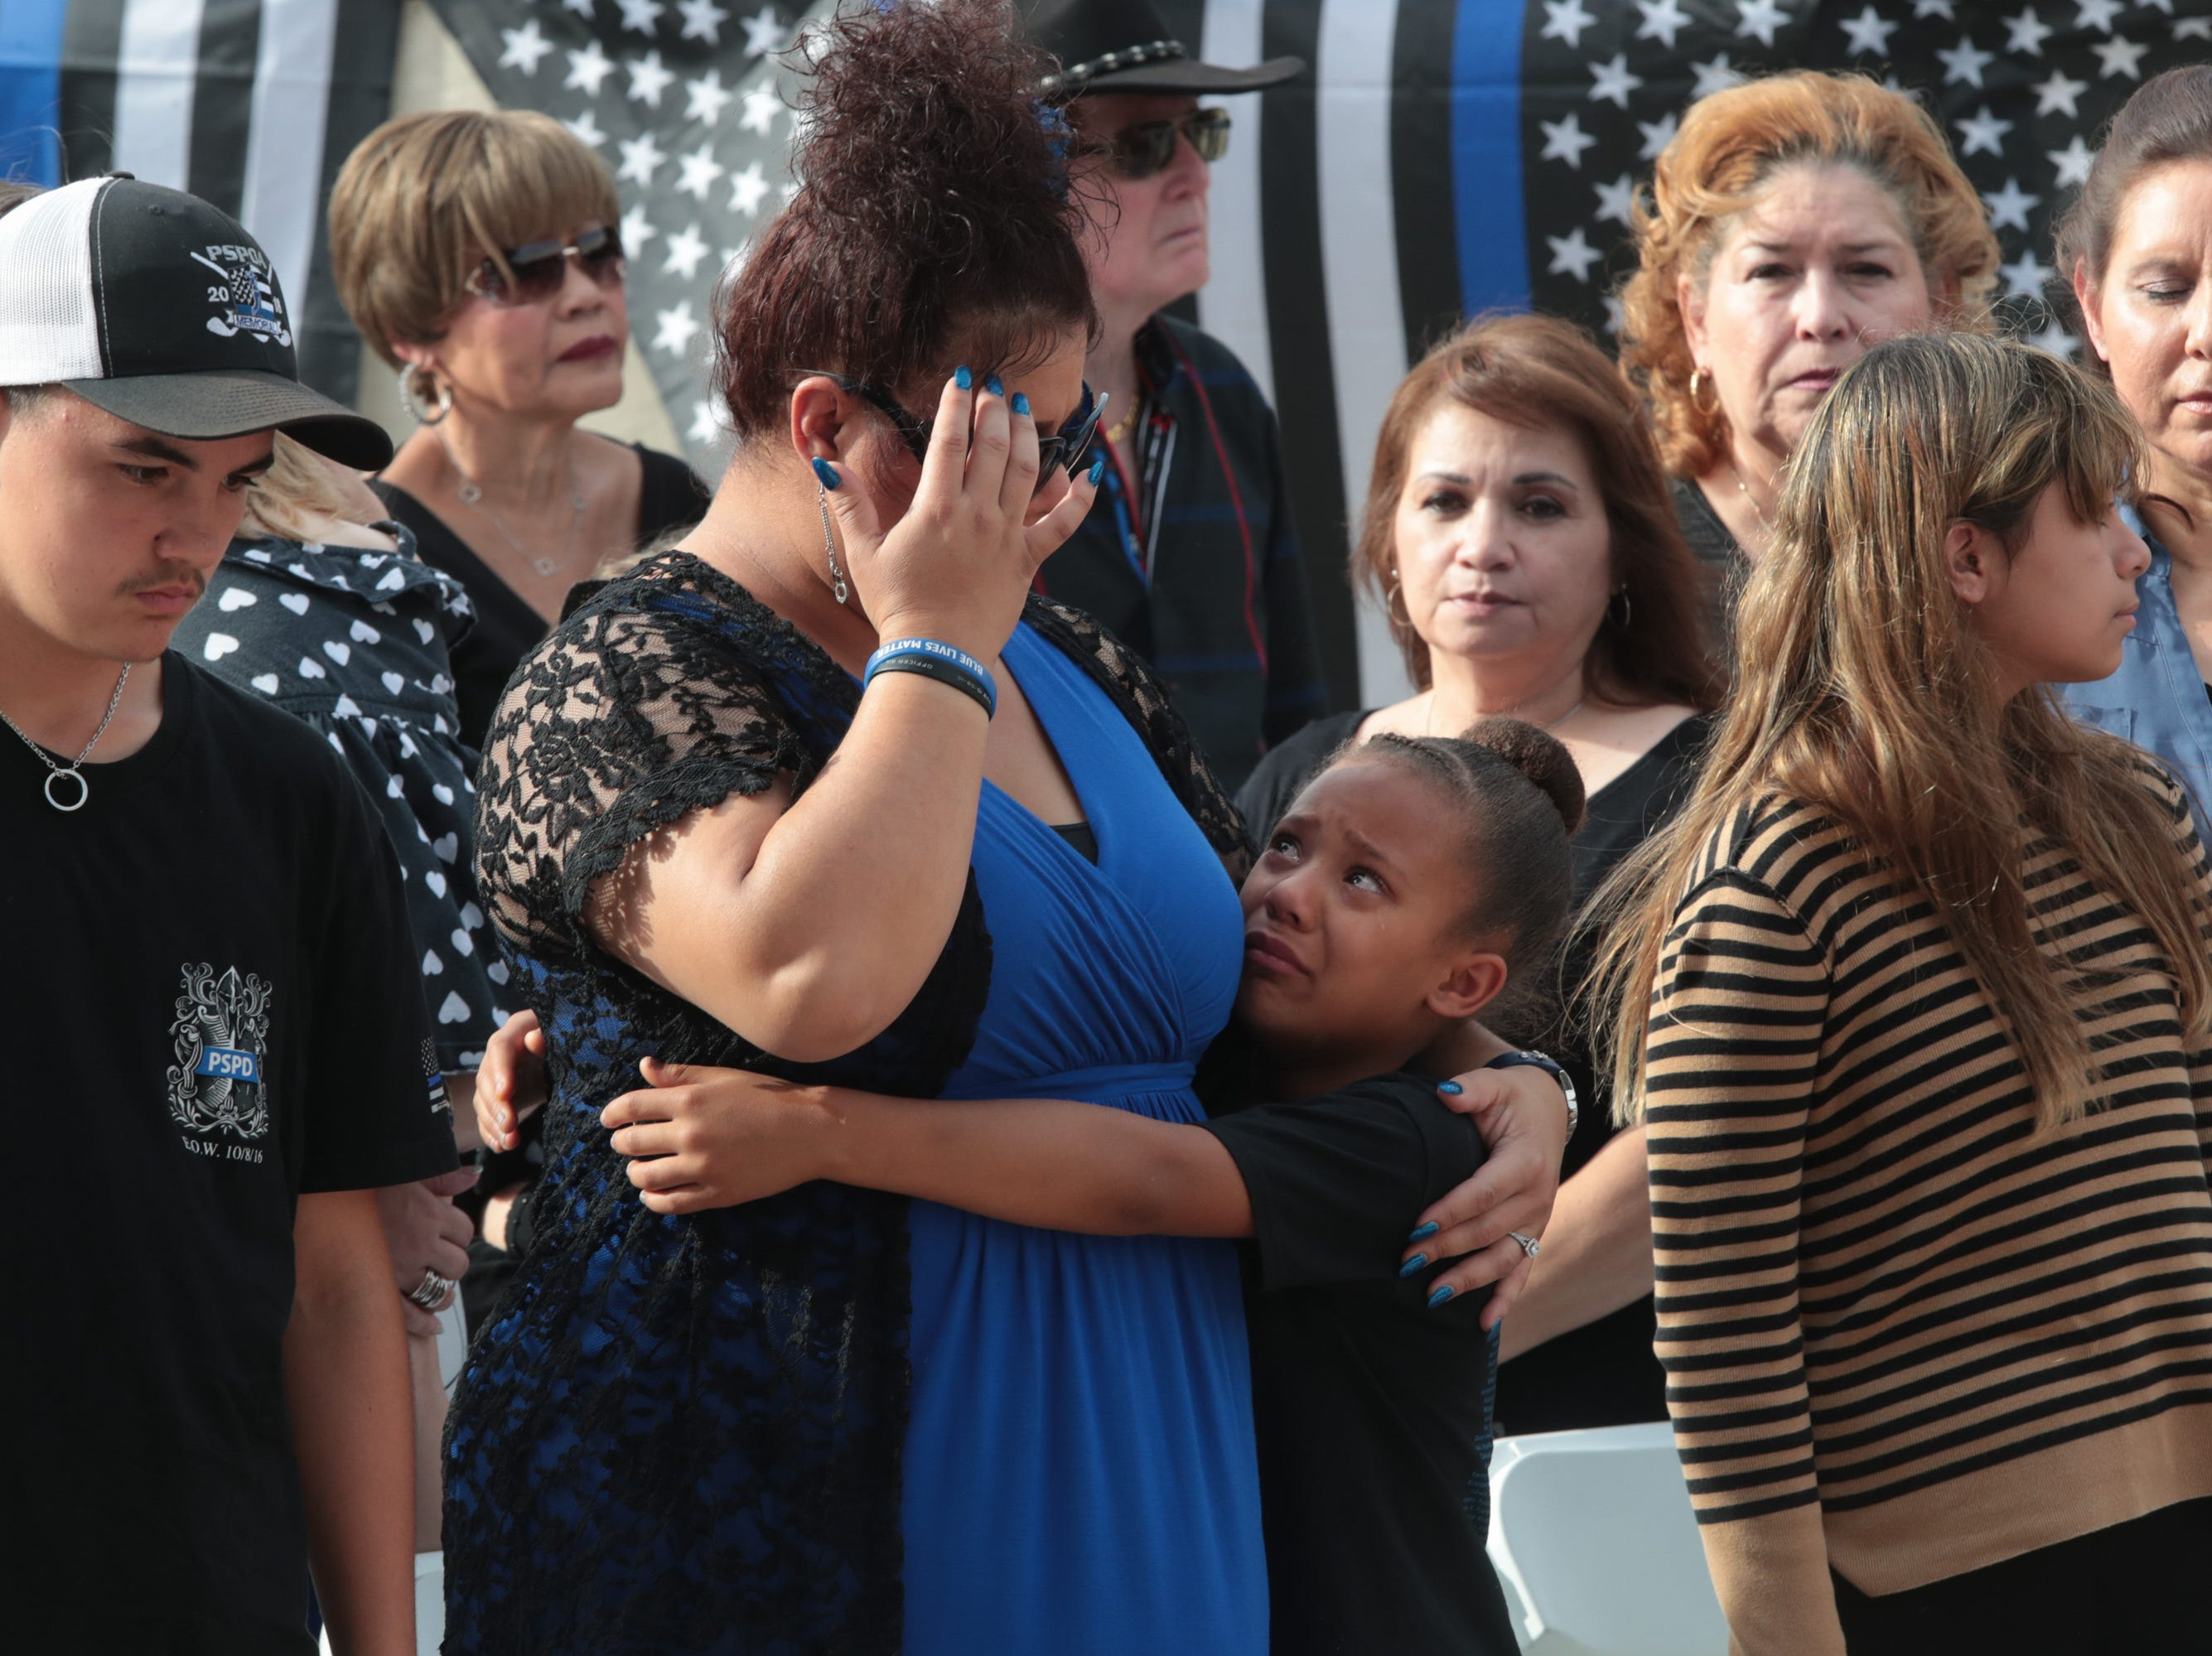 Sophia Murray embraces her mother Andrea Murray, the stepdaughter of Officer Vega, during a ceremony honoring fallen Palm Springs police officers on Peace Officers Memorial Day, Palm Springs, Calif., May 15, 2019.